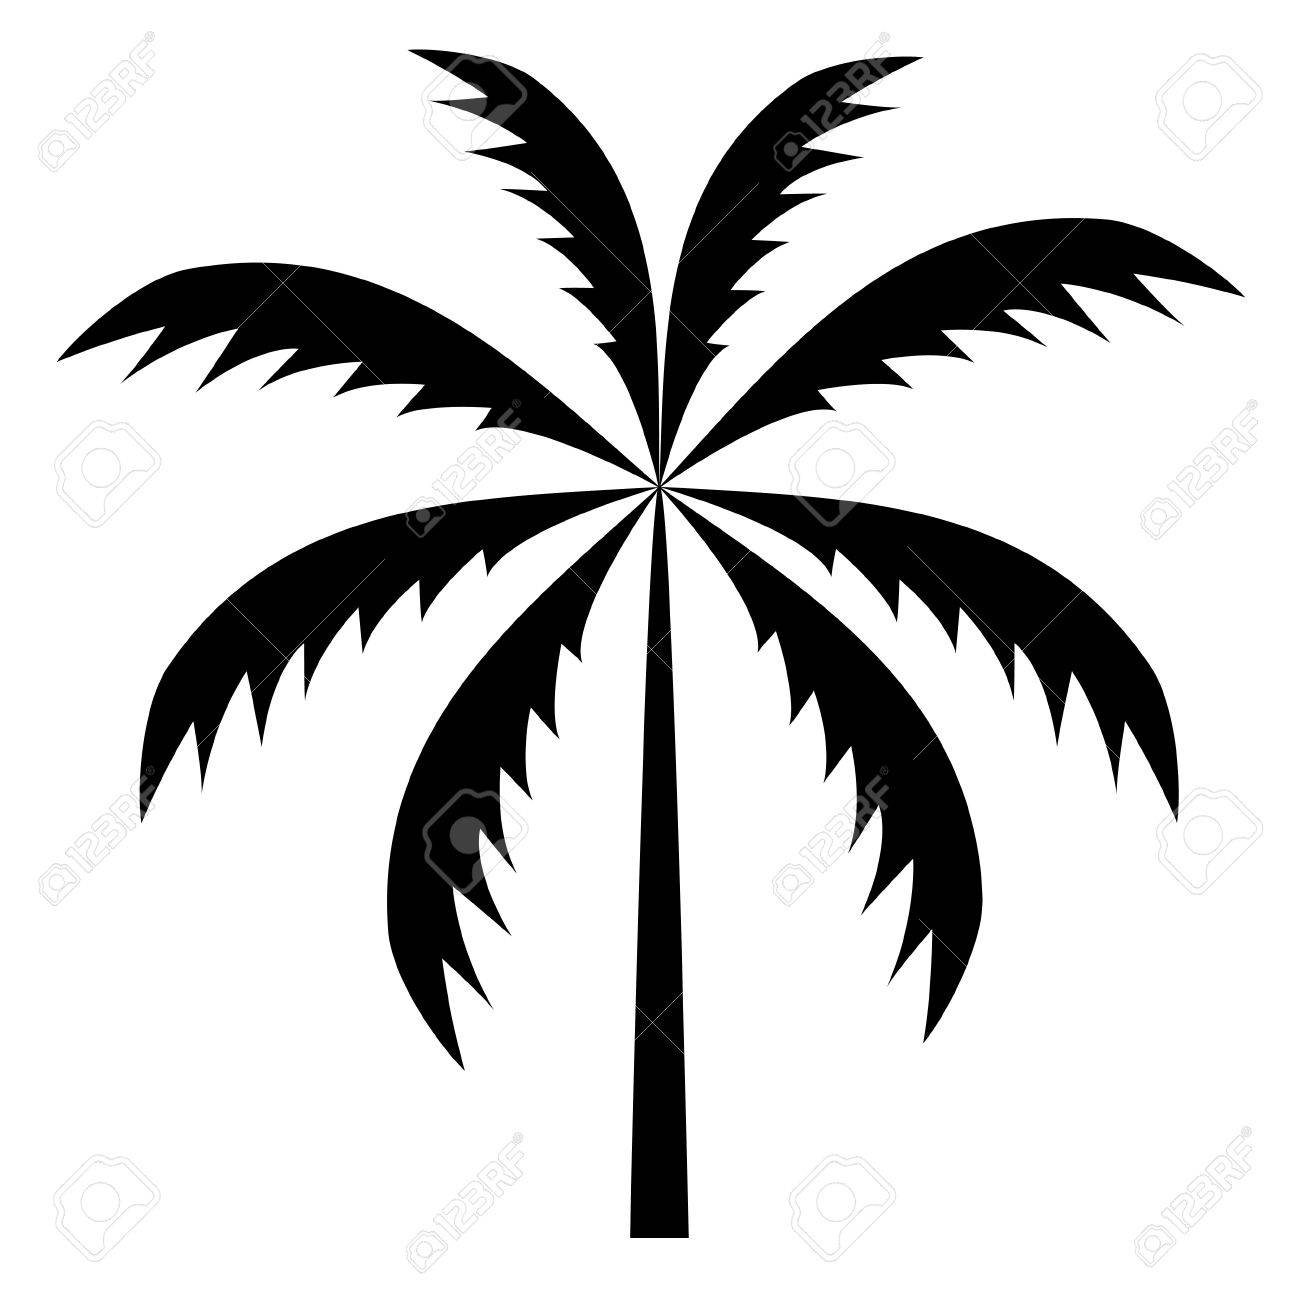 silhouette of palm trees vector illustration royalty free cliparts rh 123rf com palm tree vector clip art palm tree clip art vector free